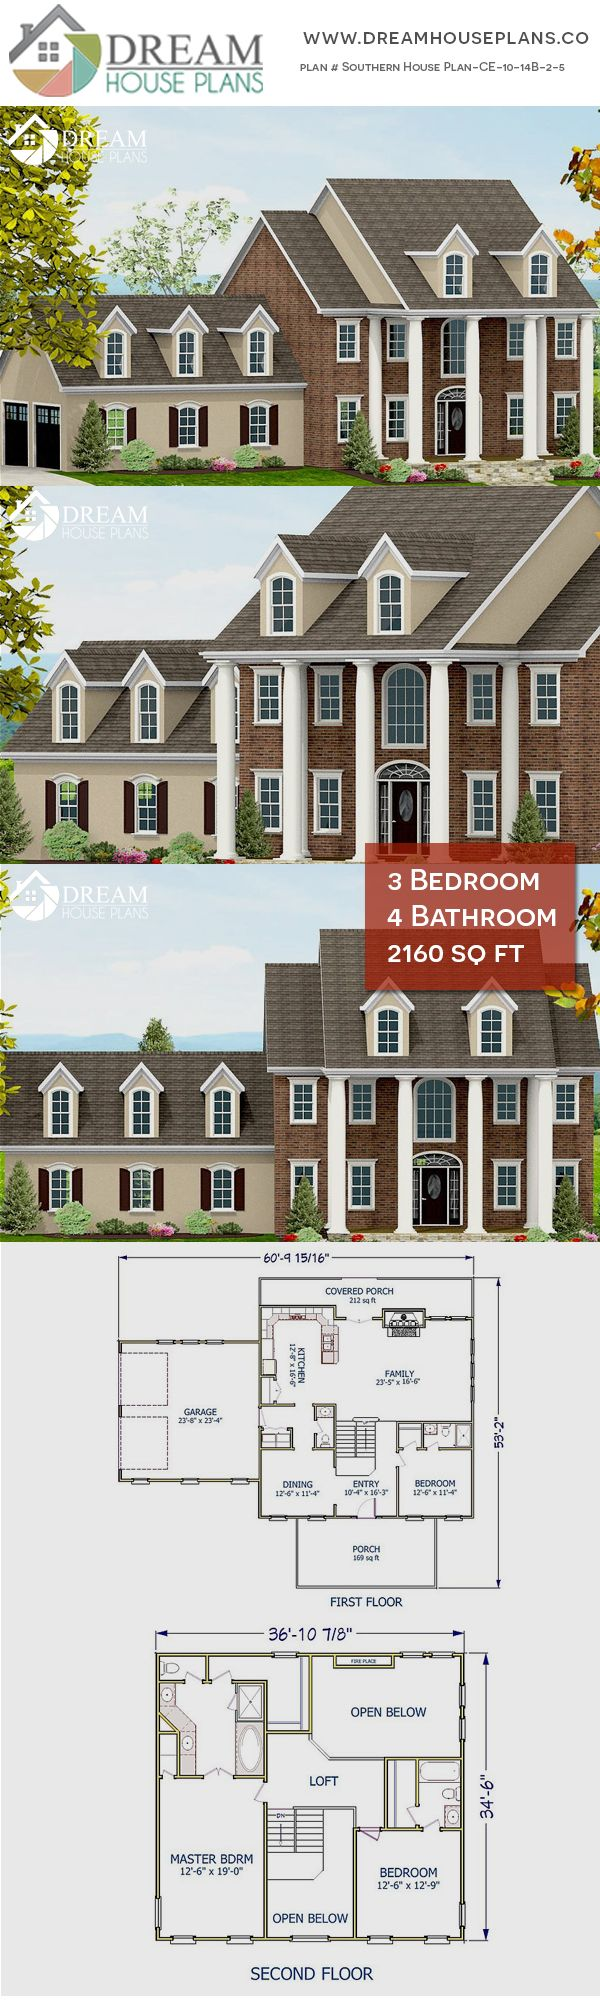 3 Bedroom 4 Bathroom 2160sq Ft Southern House Plan Ce